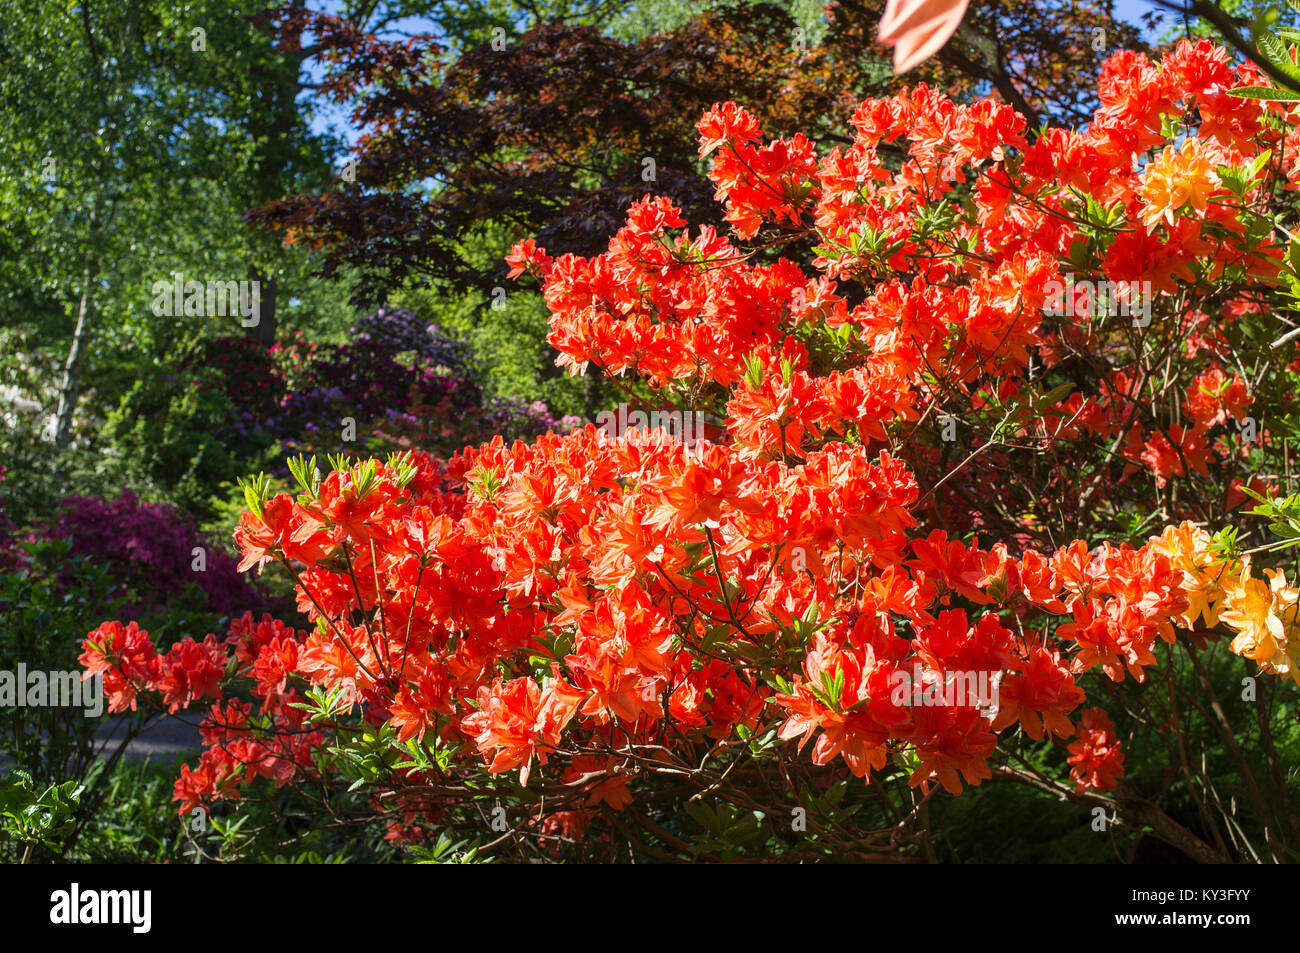 RHODODENDRONS AND AZALEAS IN WOODLAND GARDENS - Stock Image